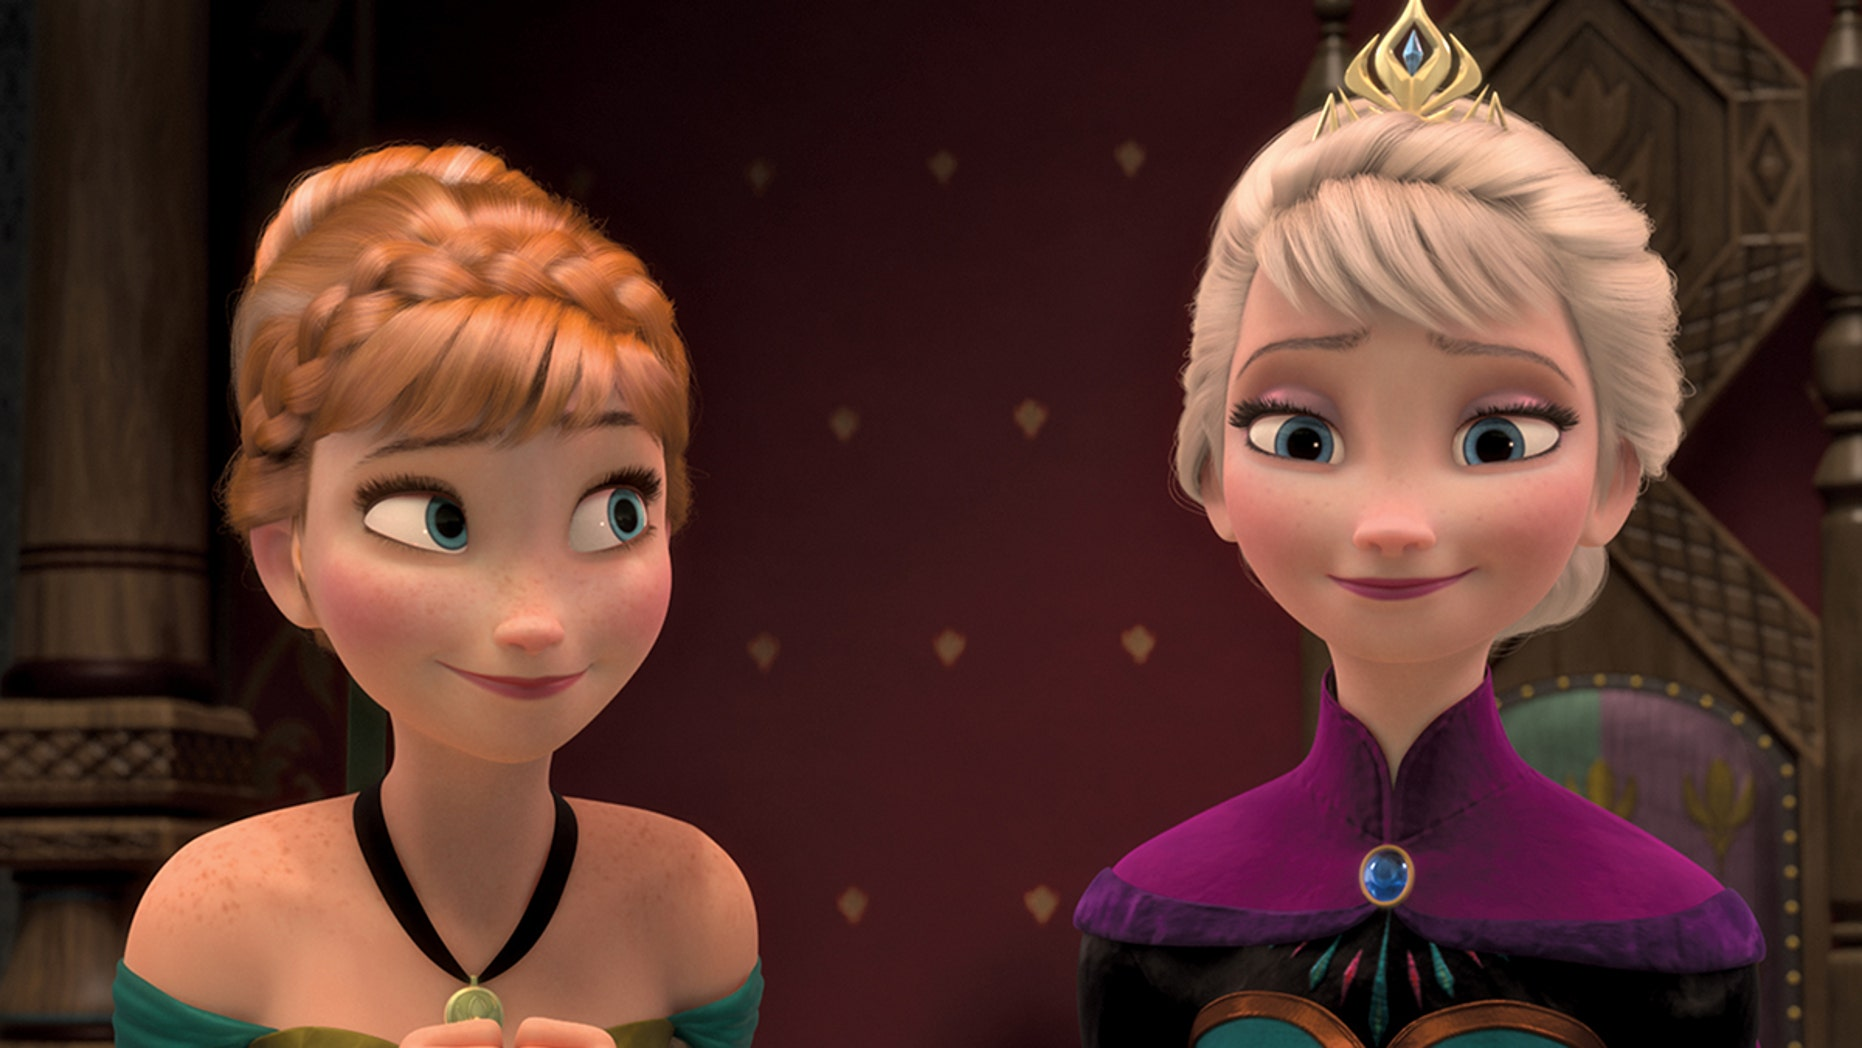 FROZEN -When the newly crowned Queen Elsa accidentally uses her power to turn things into ice to curse her home in infinite winter, her sister, Anna, teams up with a mountain man, his playful reindeer, and a snowman to change the weather condition. (Disney)ANNA, ELSA